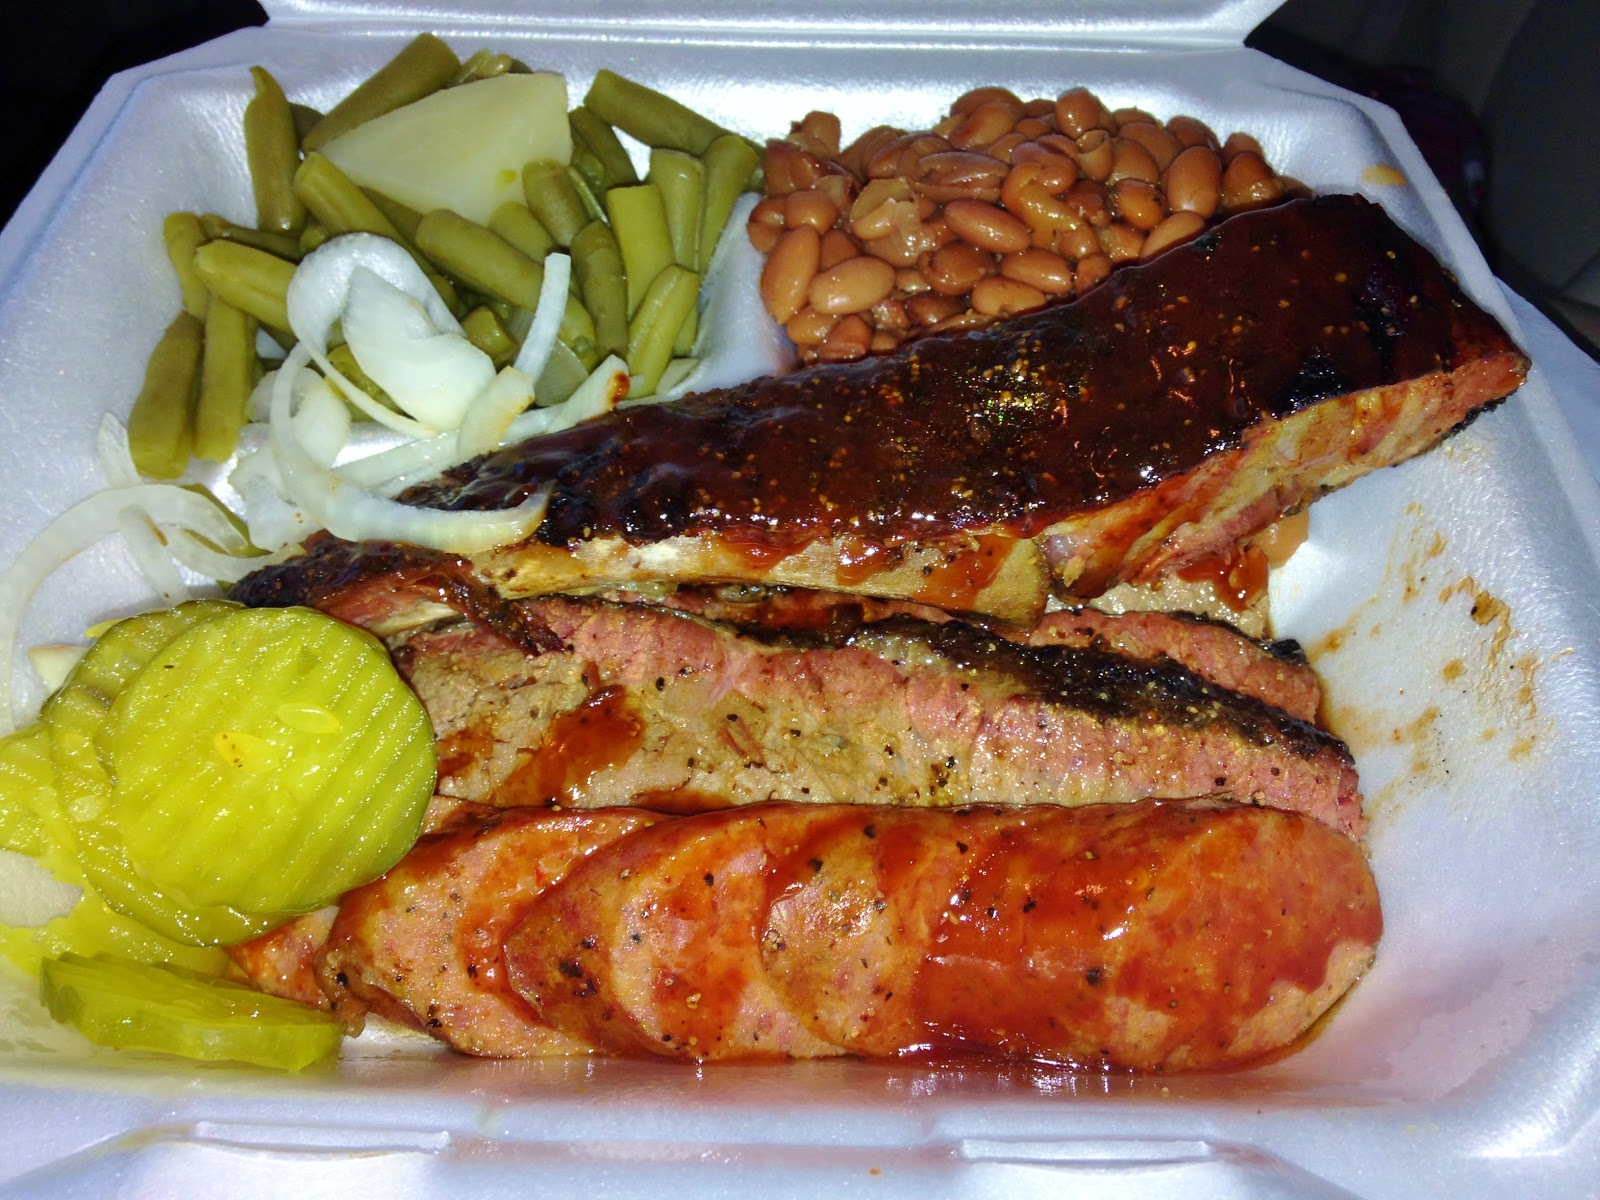 Three Meat Plate: Brisket, Pork Ribs, Sausage